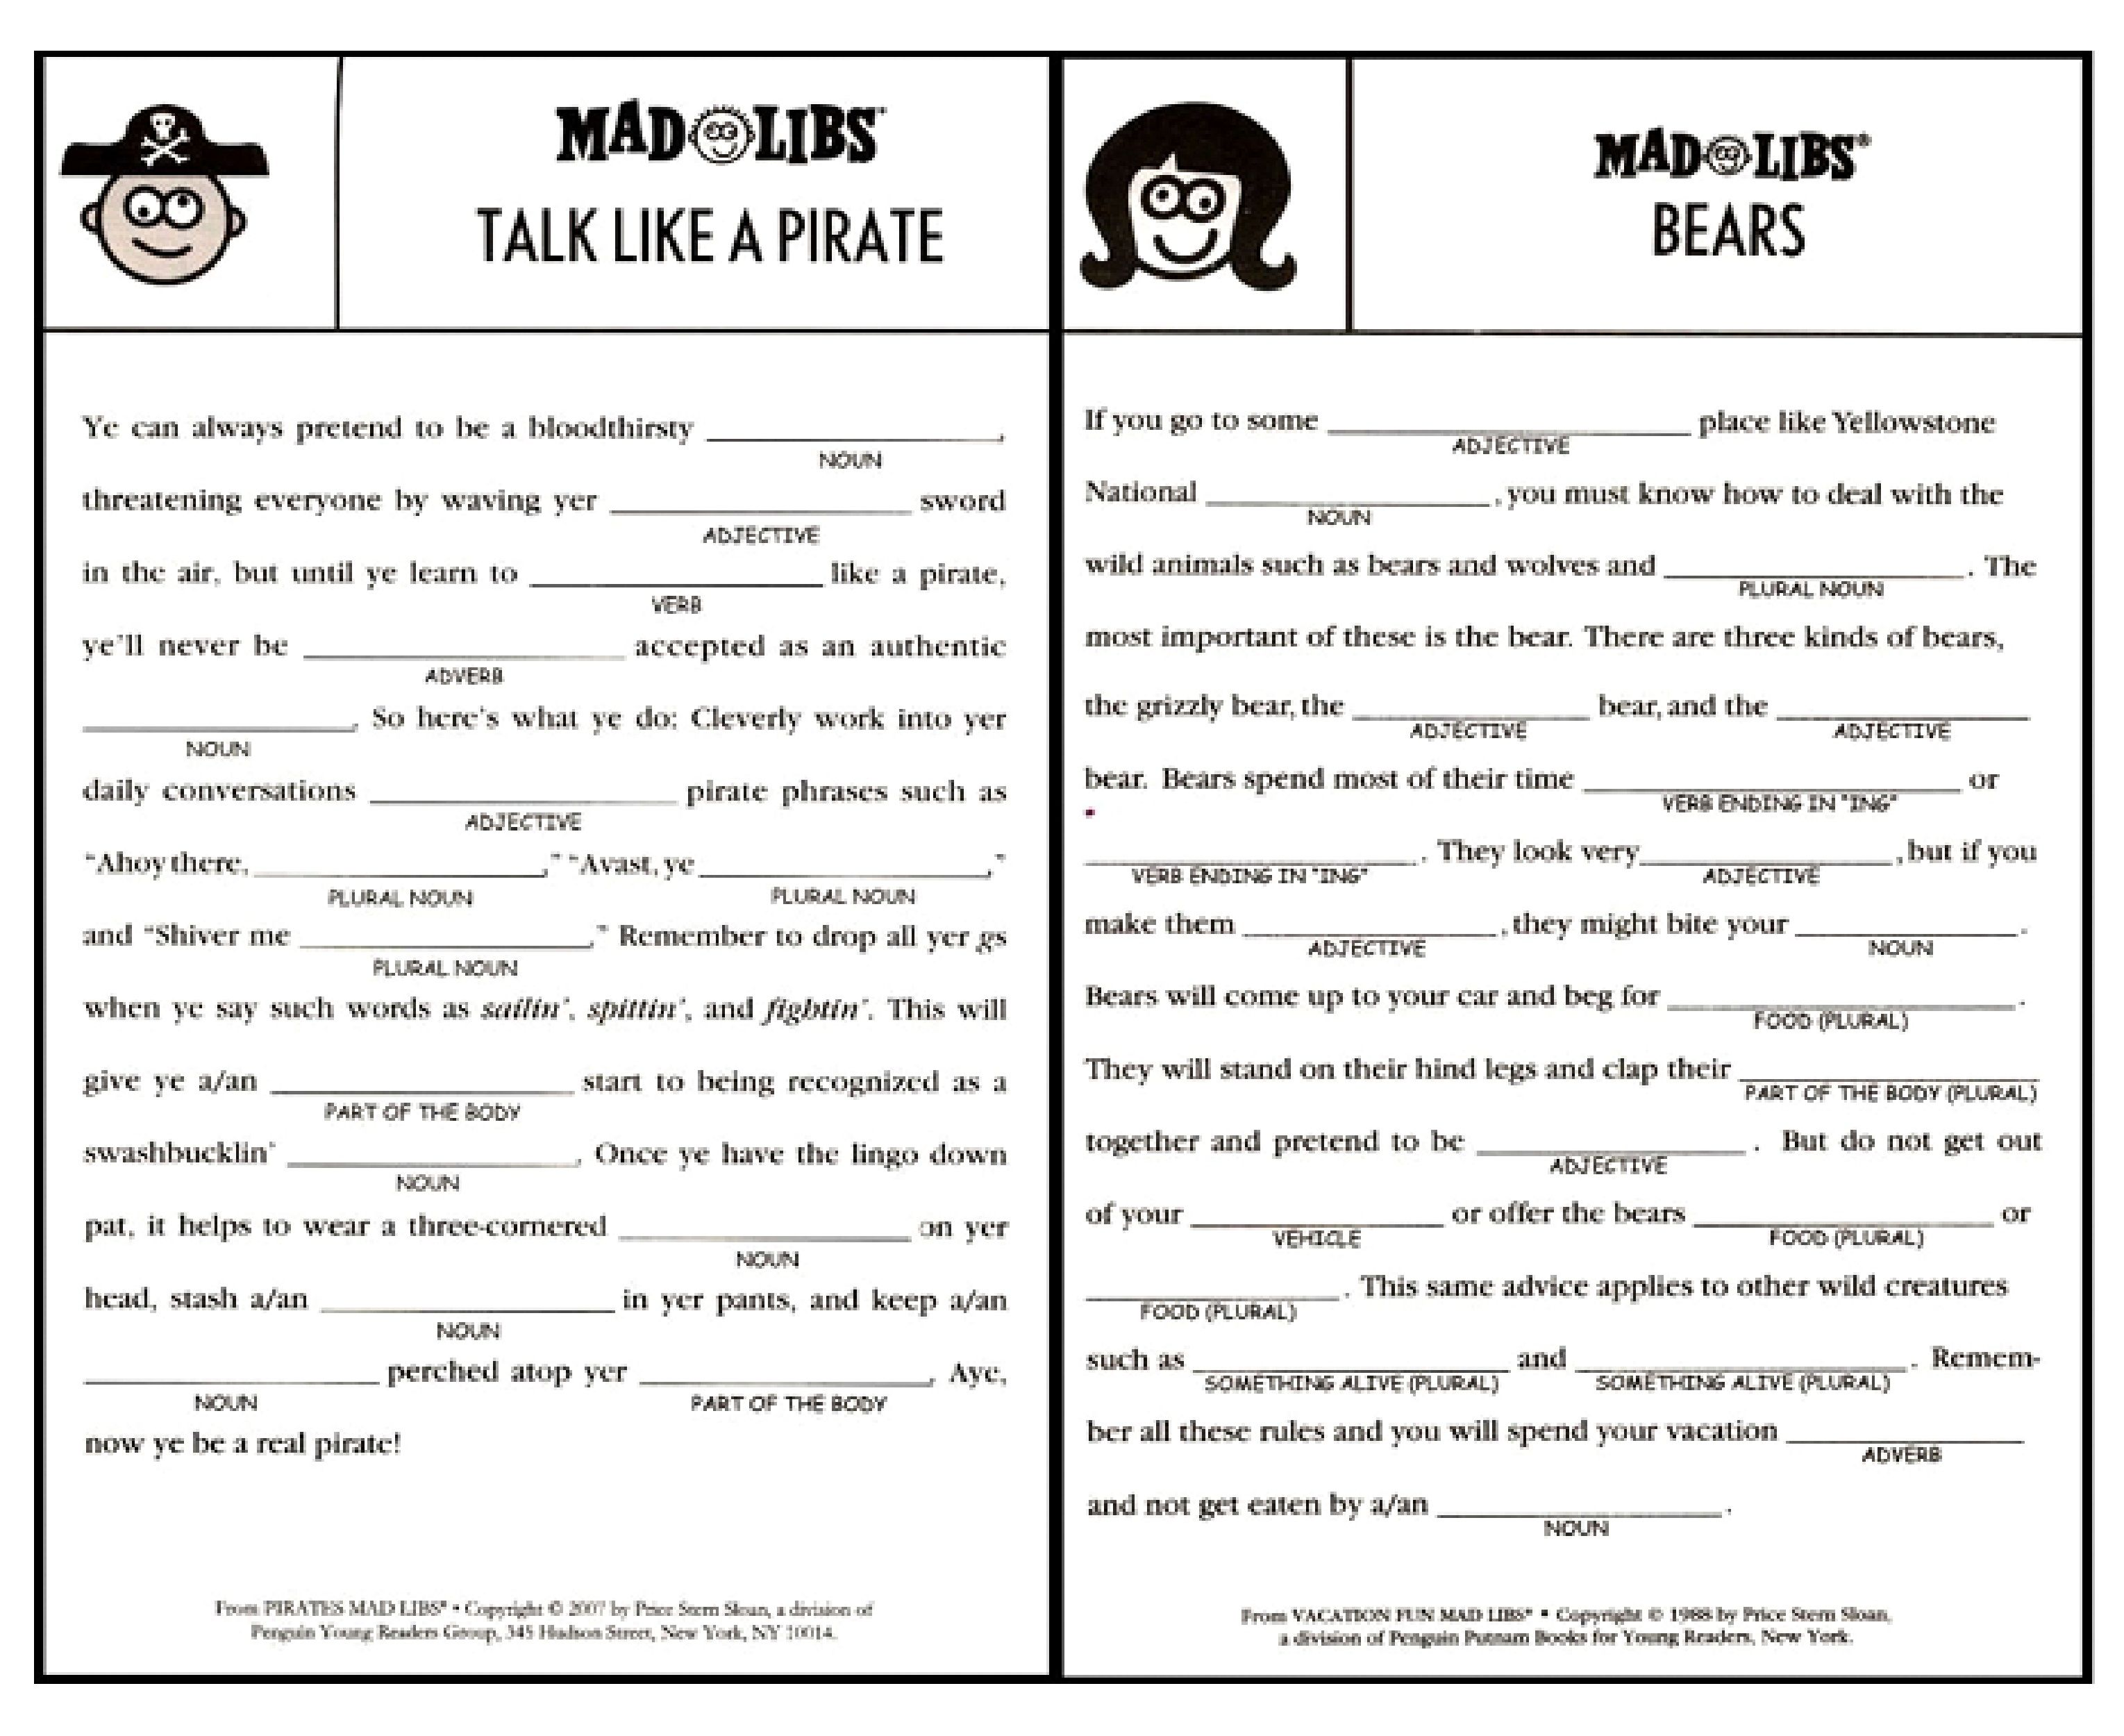 image regarding Printable Mad Libs Sheets for Adults referred to as printable outrageous libs sheets for grownups - Google Glimpse